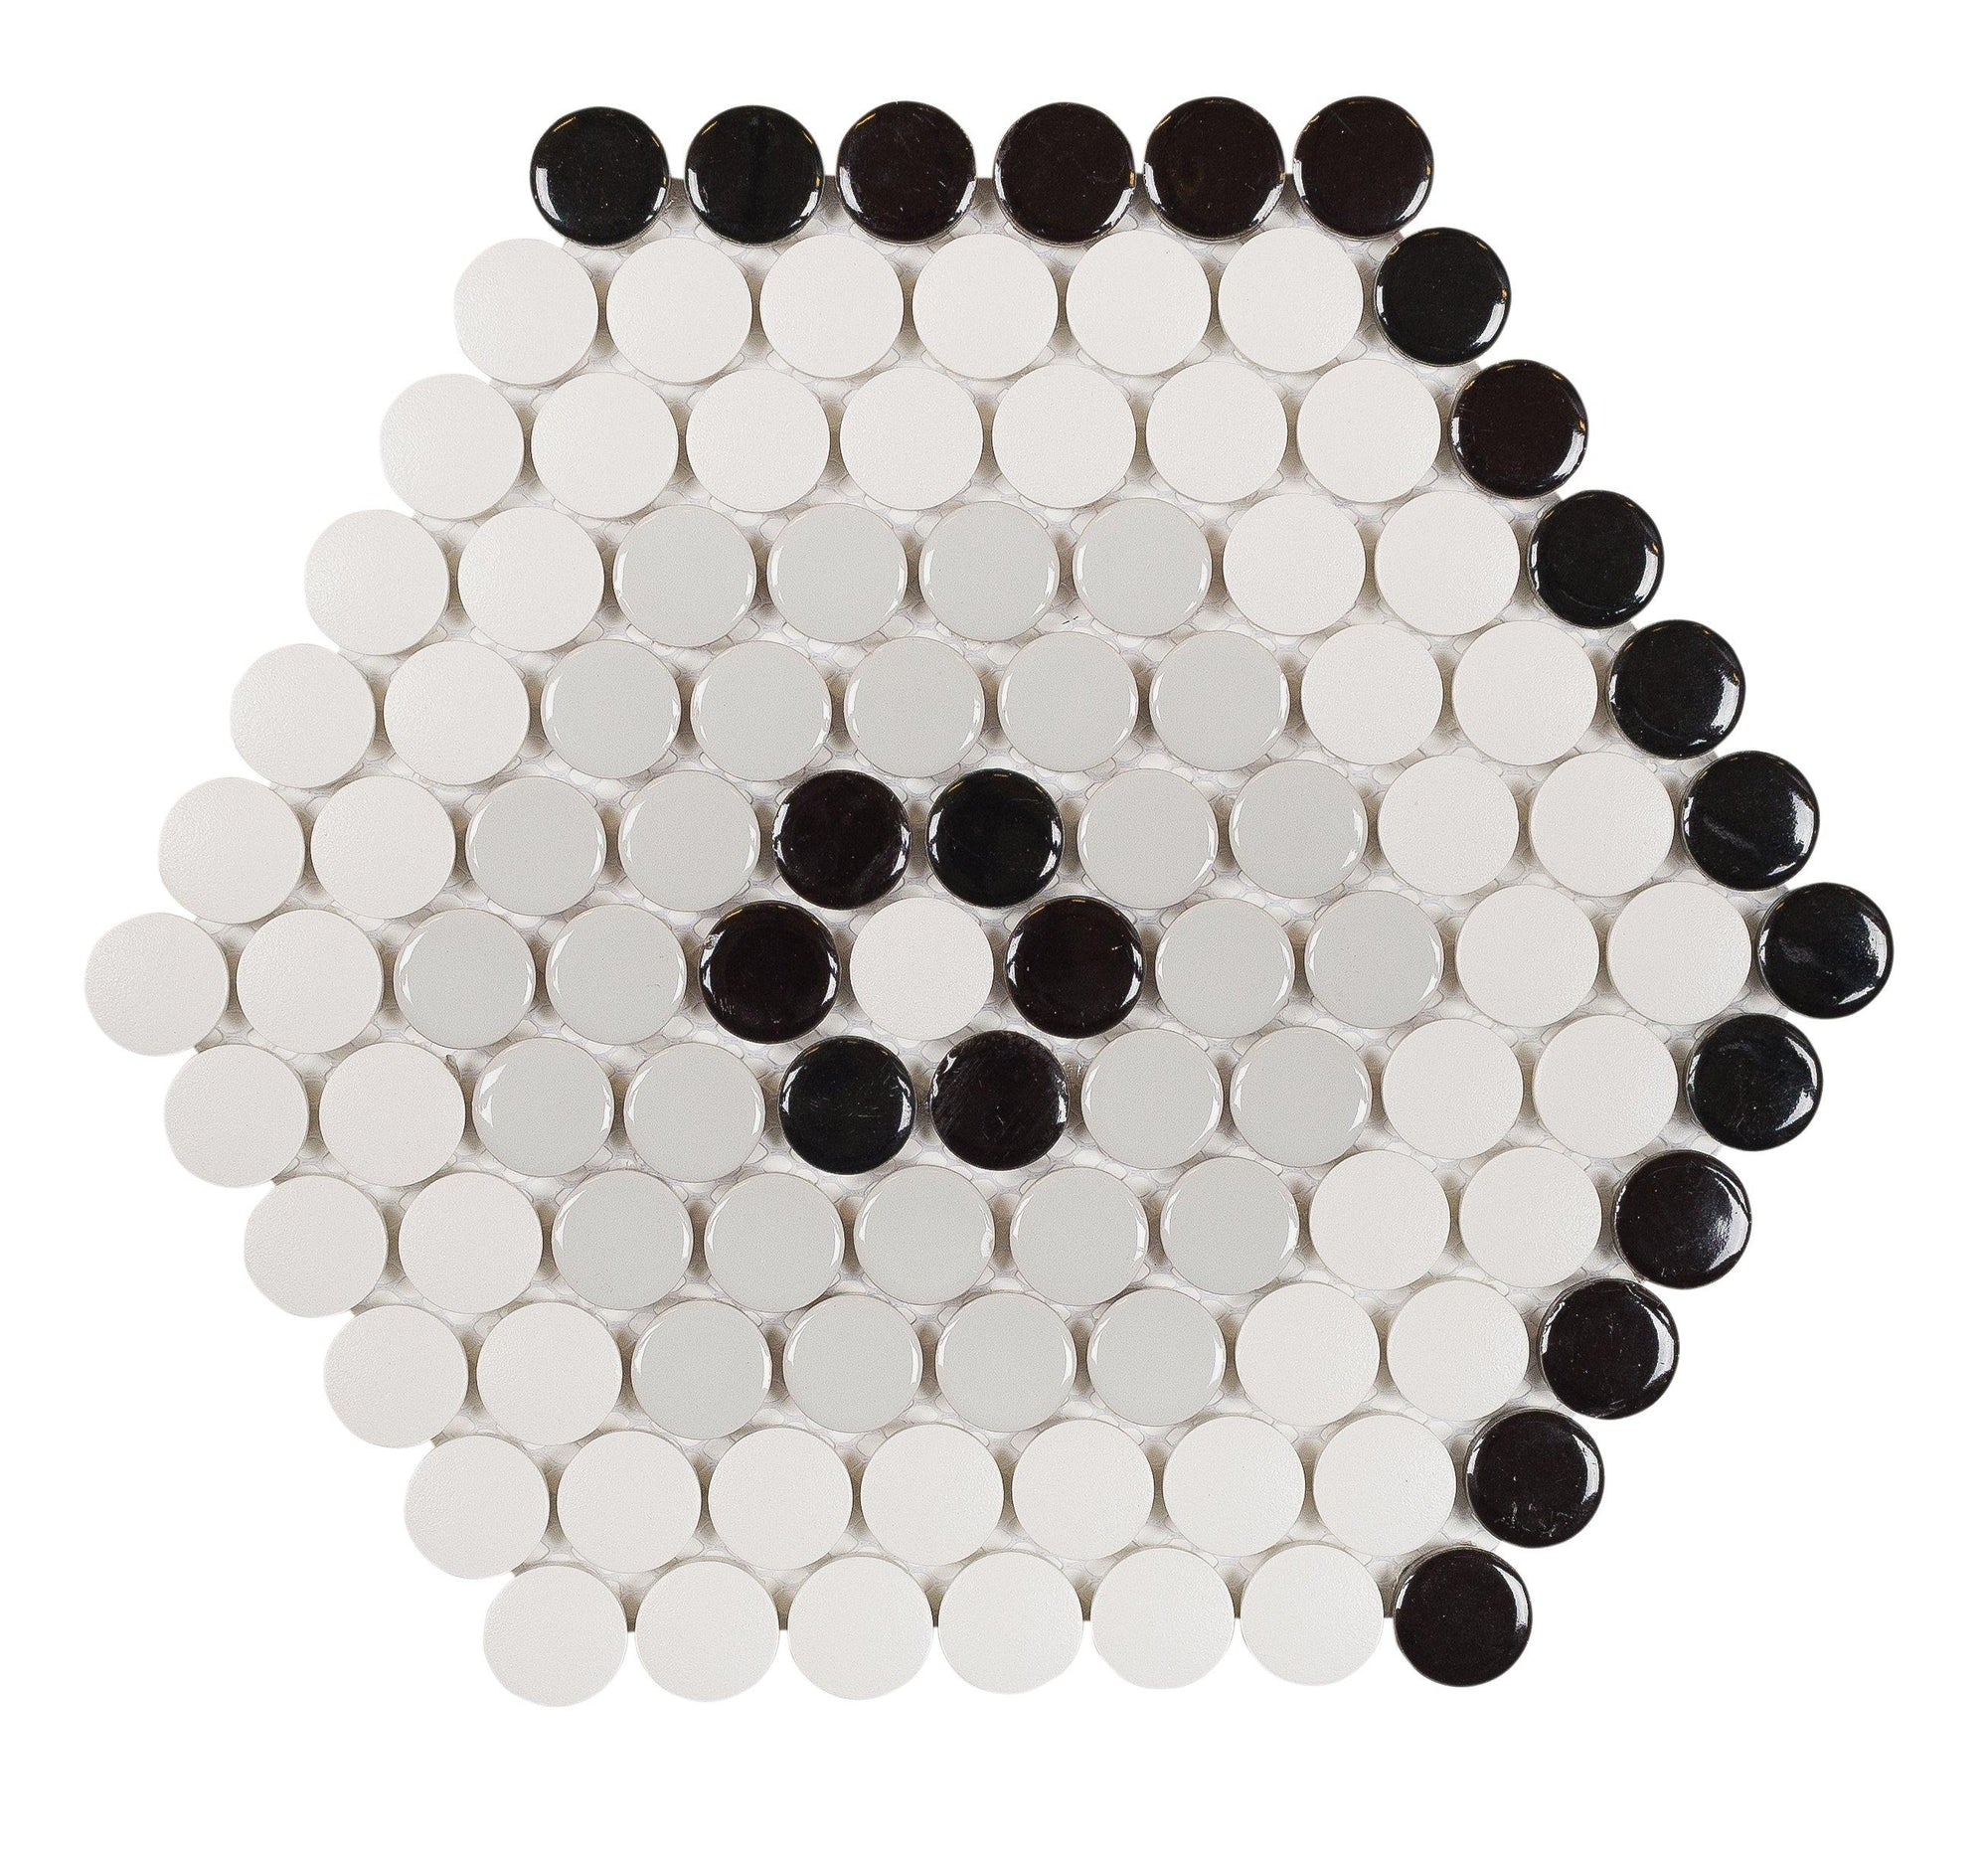 Brisbane Designer Hexagon Mosaic